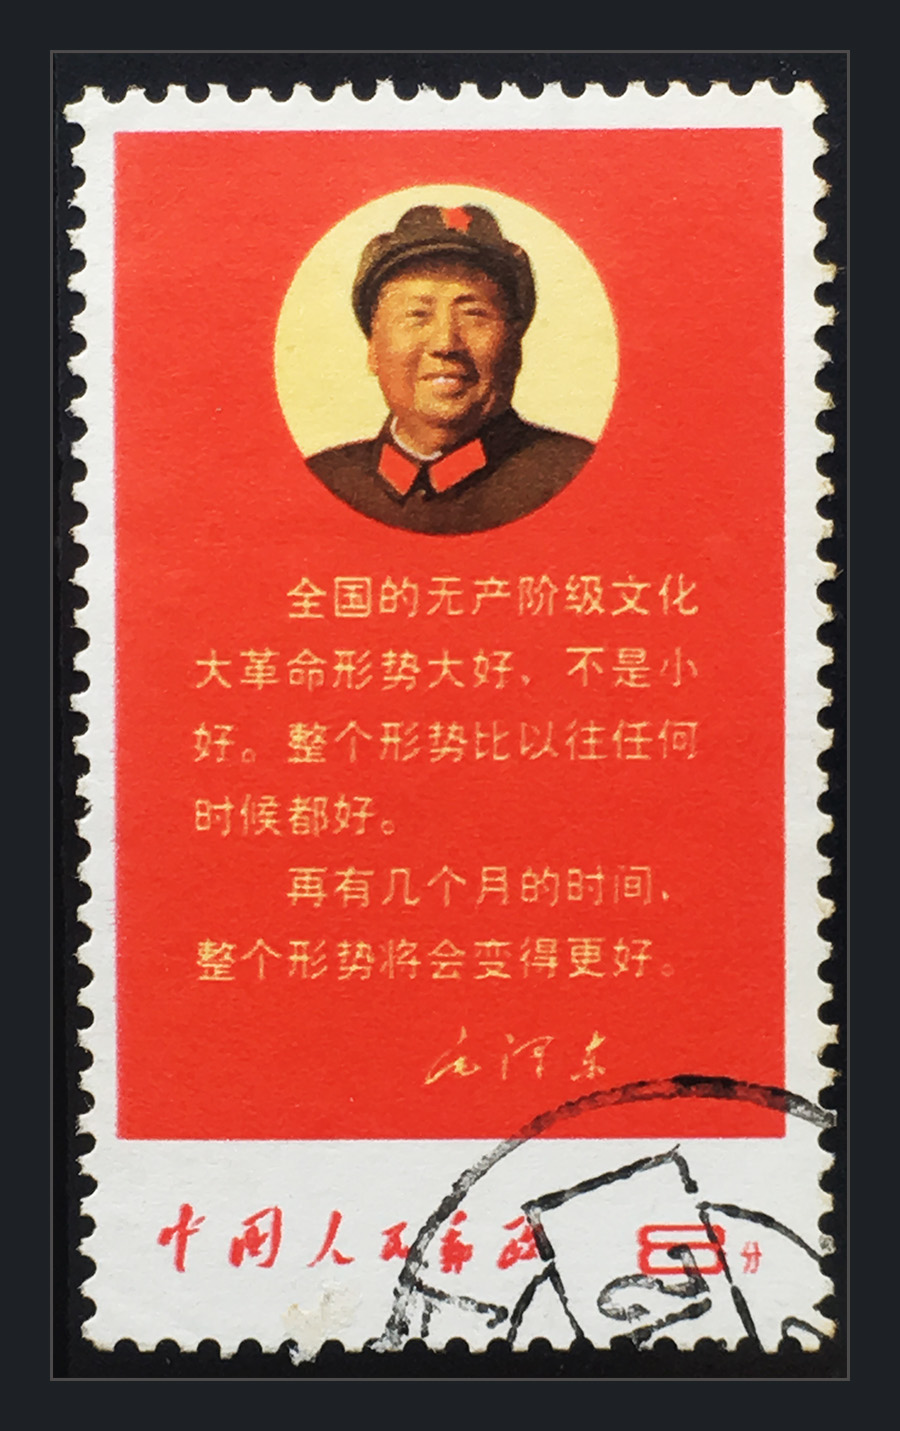 Ahman 攝影師工作紀錄: 拍攝重要的相就一定要搵好的攝影師.A shot of a valuable stamp for auction usage 產品攝影, 活動攝影,